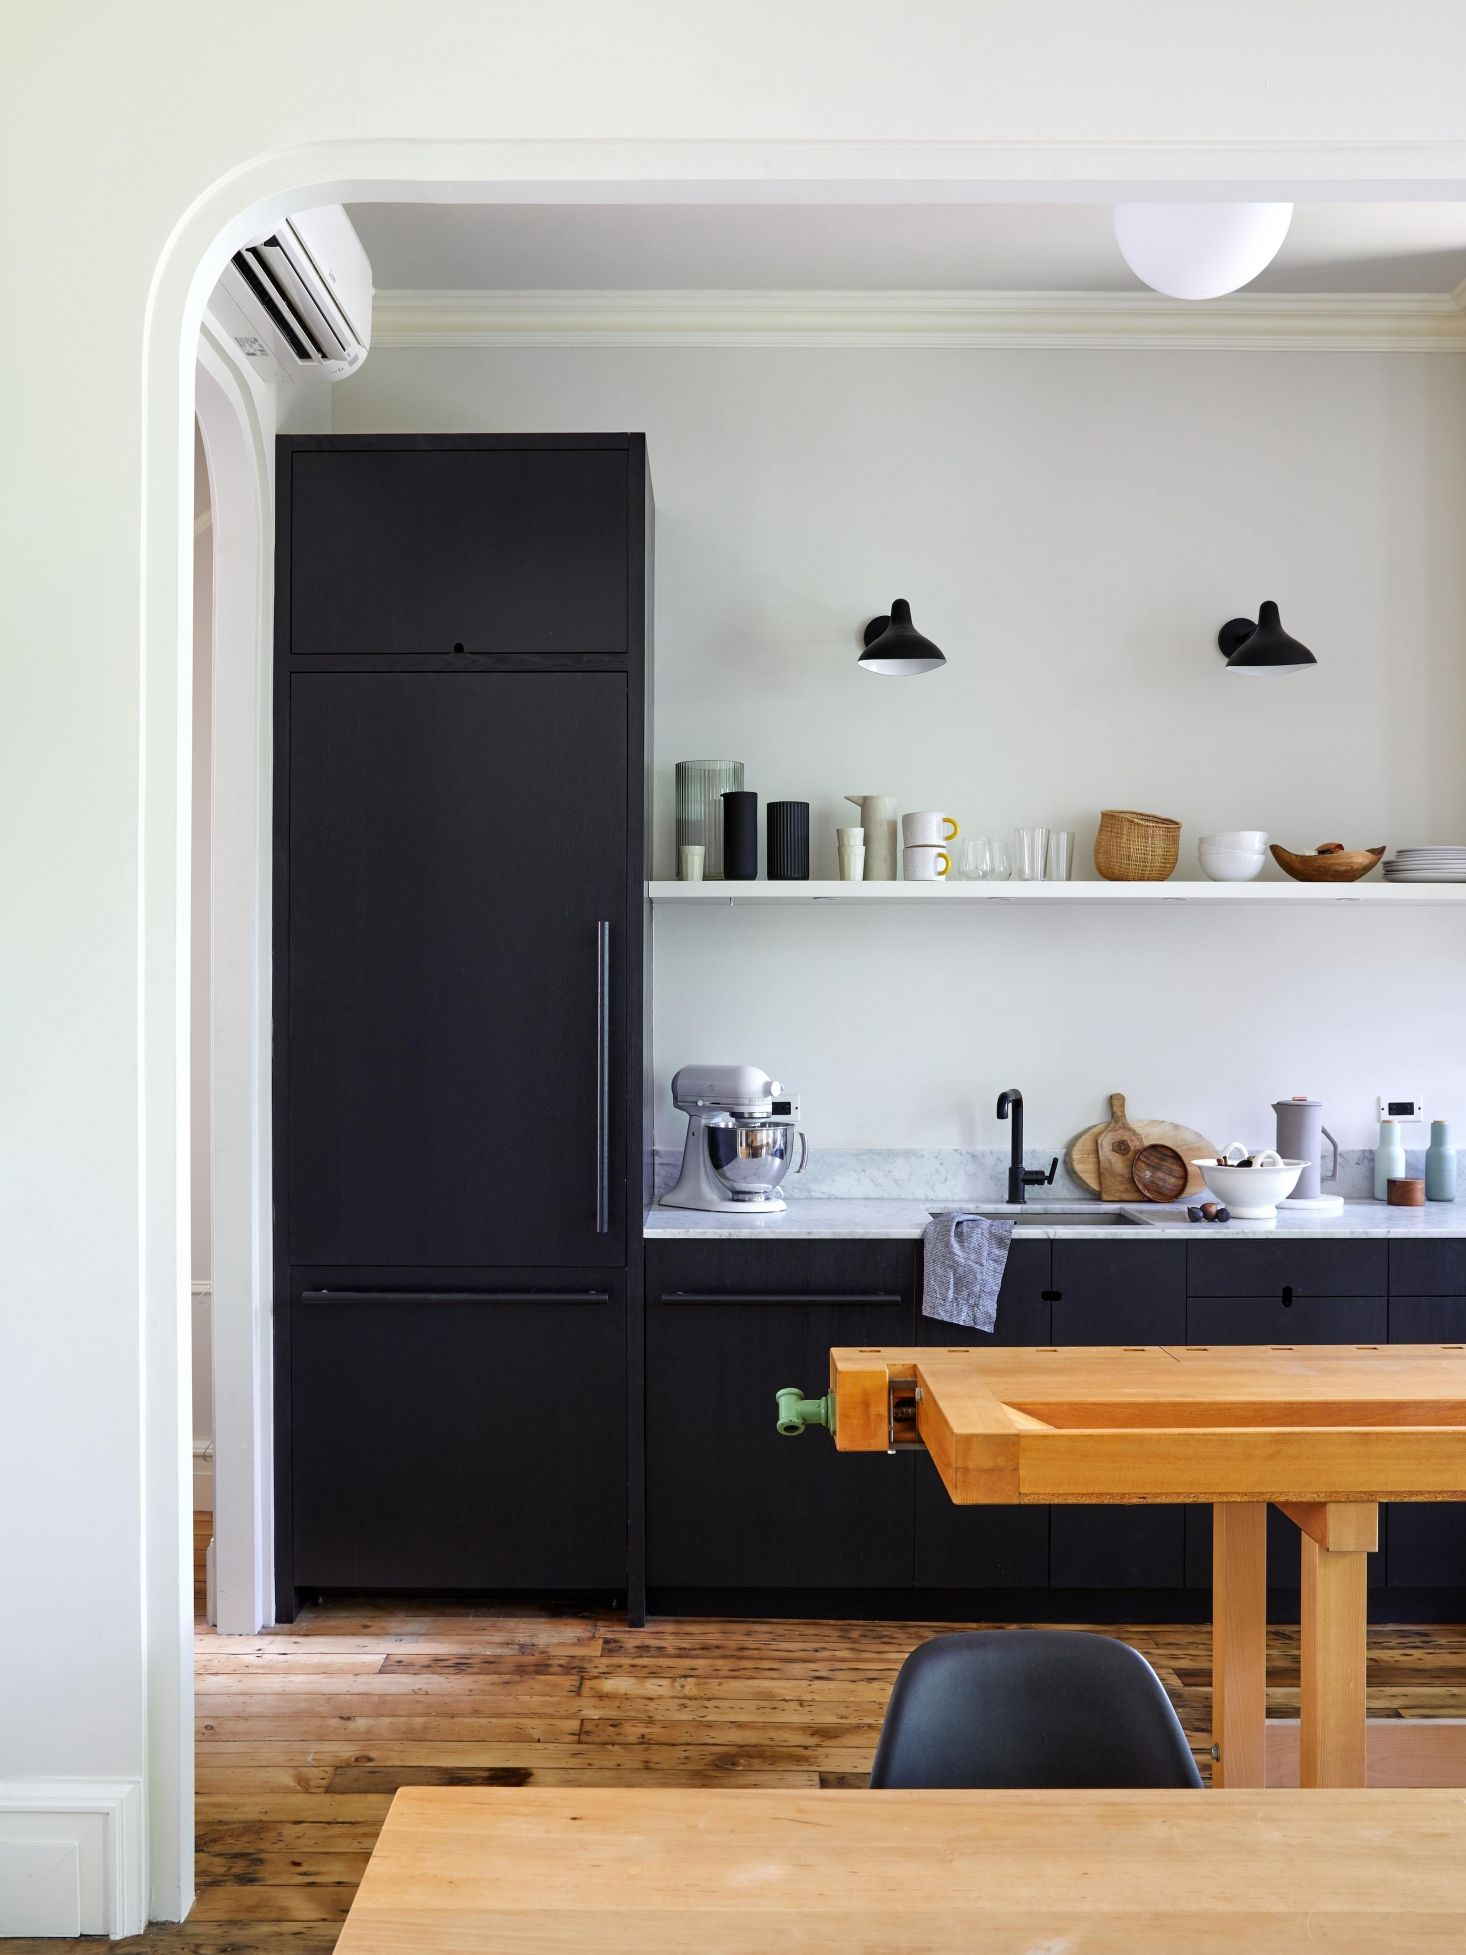 Warm Minimalism In A Young Architect S Own Brooklyn Townhouse Renovation Black Kitchen Cabinets Black Kitchens Kitchen Cabinet Design